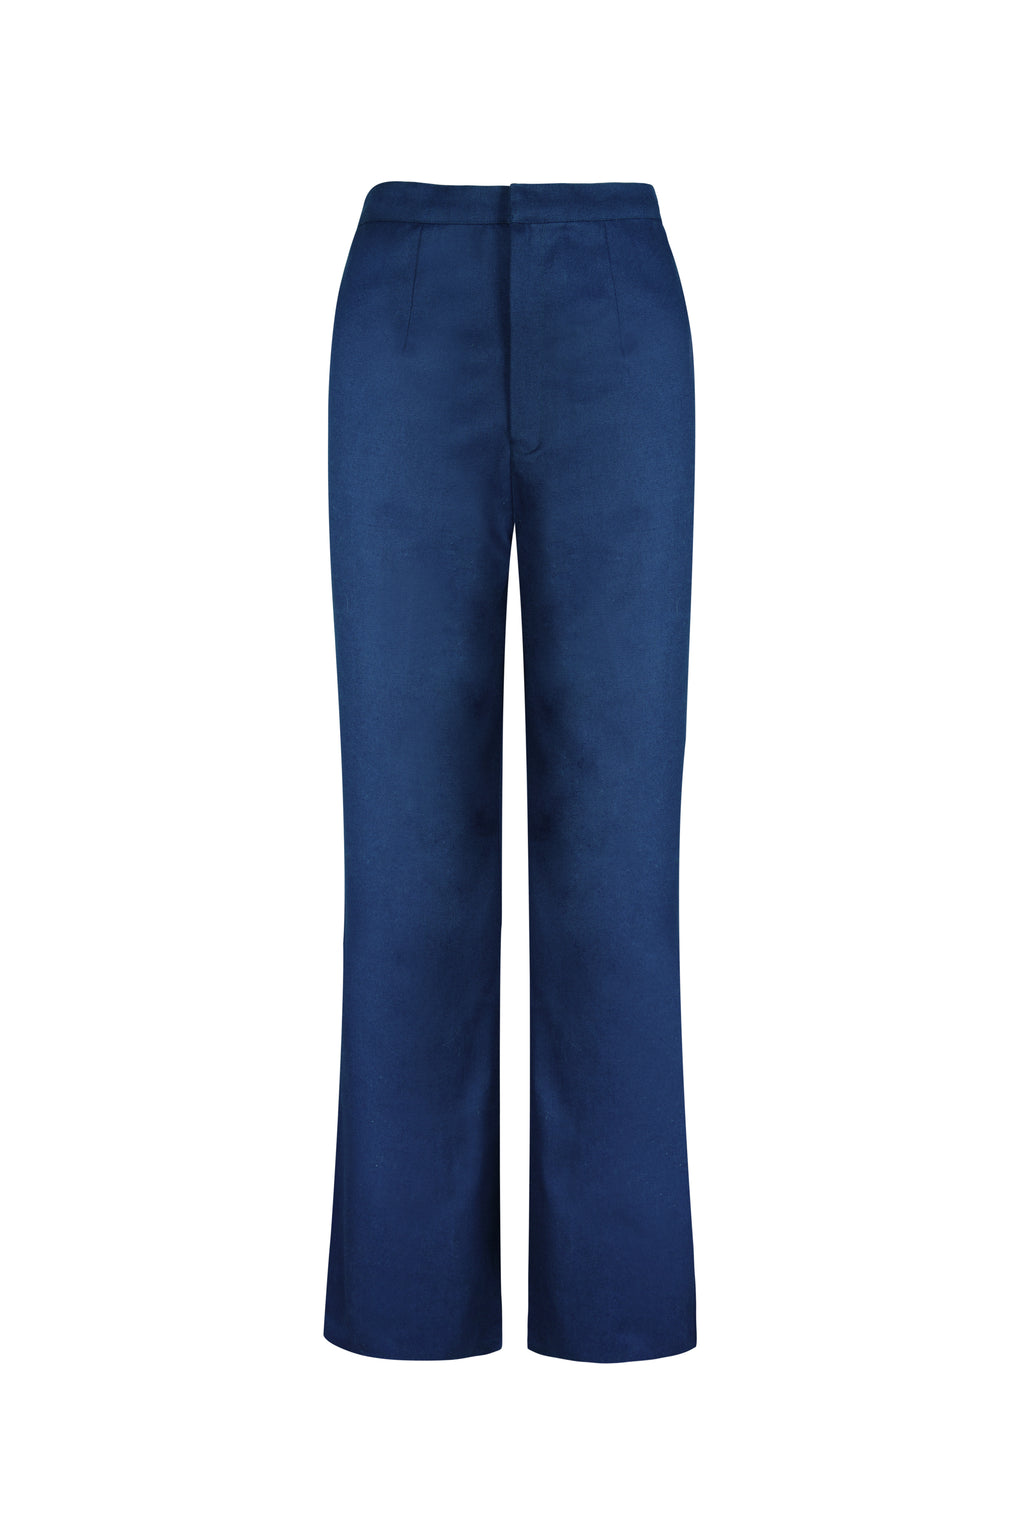 ORGANIC COTTON WIDE LEG TROUSERS